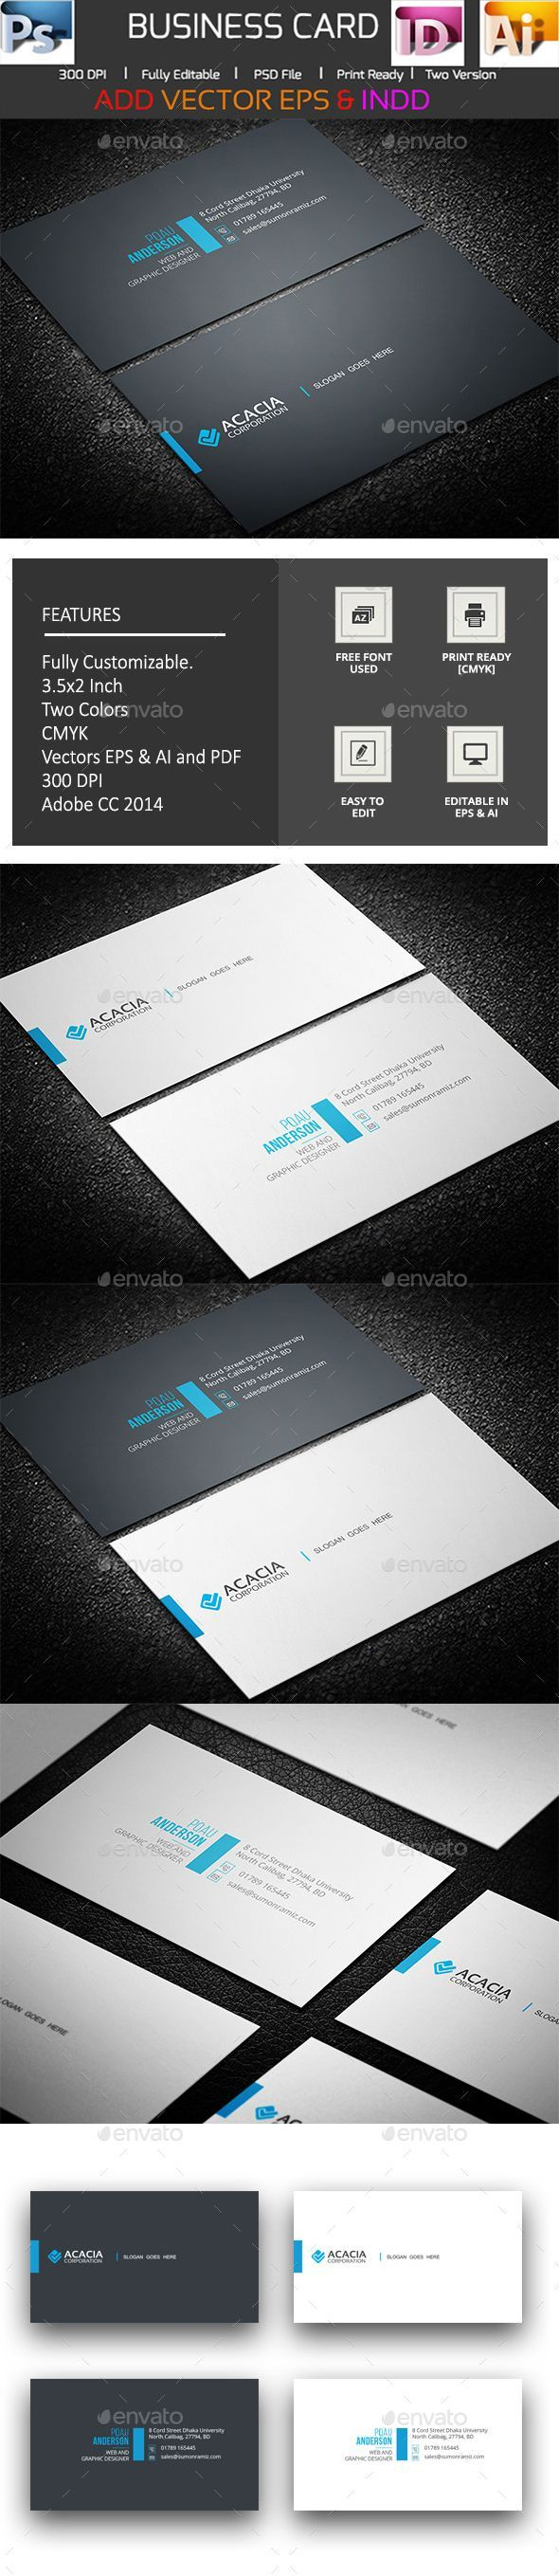 919 Best Business Card Images On Pinterest Name Cards Business